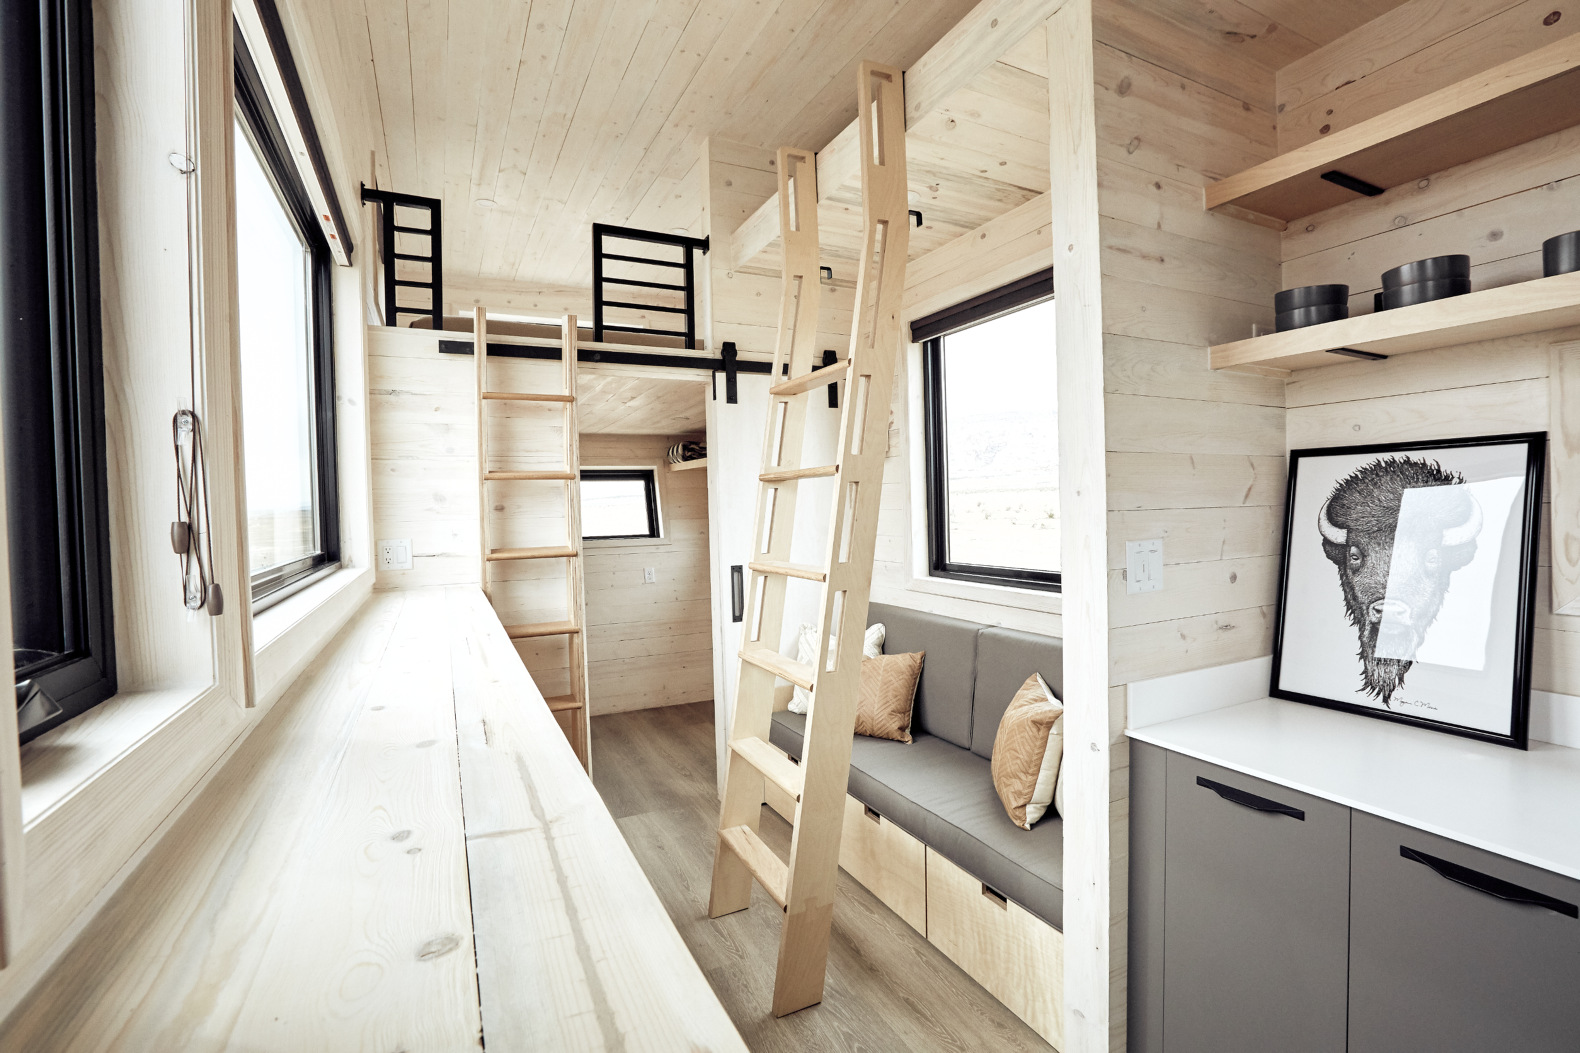 The Ship Inspired Land Ark Tiny House Has A Surprising